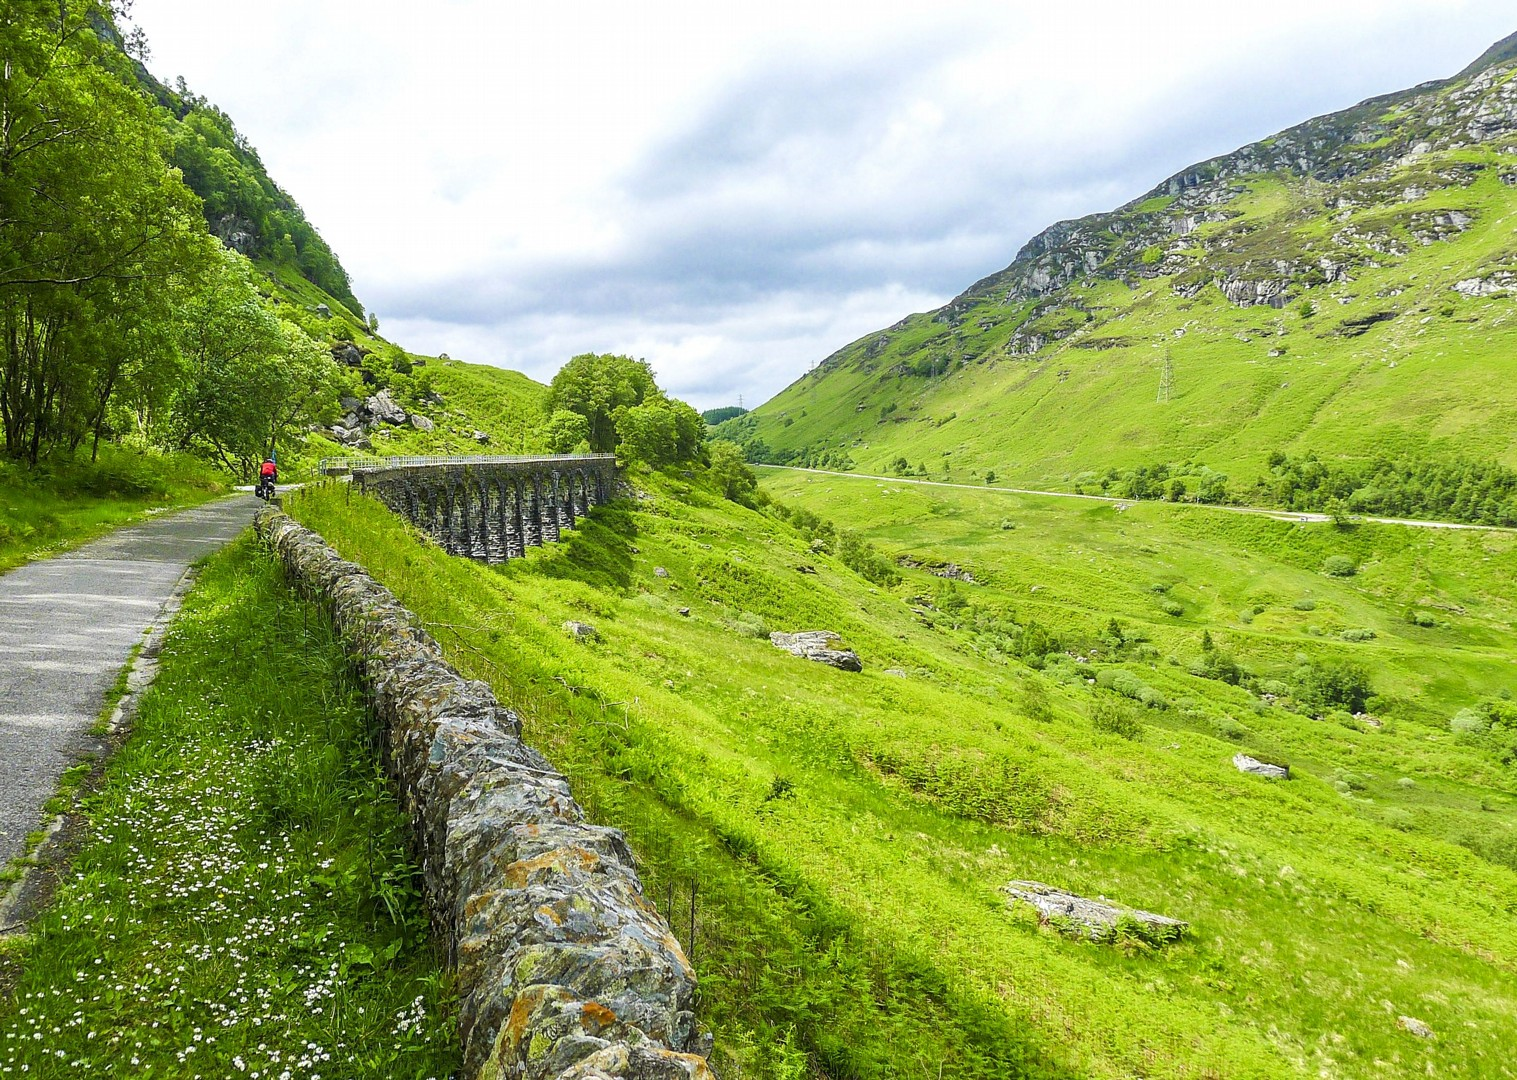 cycle-paths-uk-scotland-lochs-and-glens-countryside-tour-bike.jpg - NEW! UK - Scotland - Lochs and Glens - Guided Leisure Cycling Holiday - Leisure Cycling